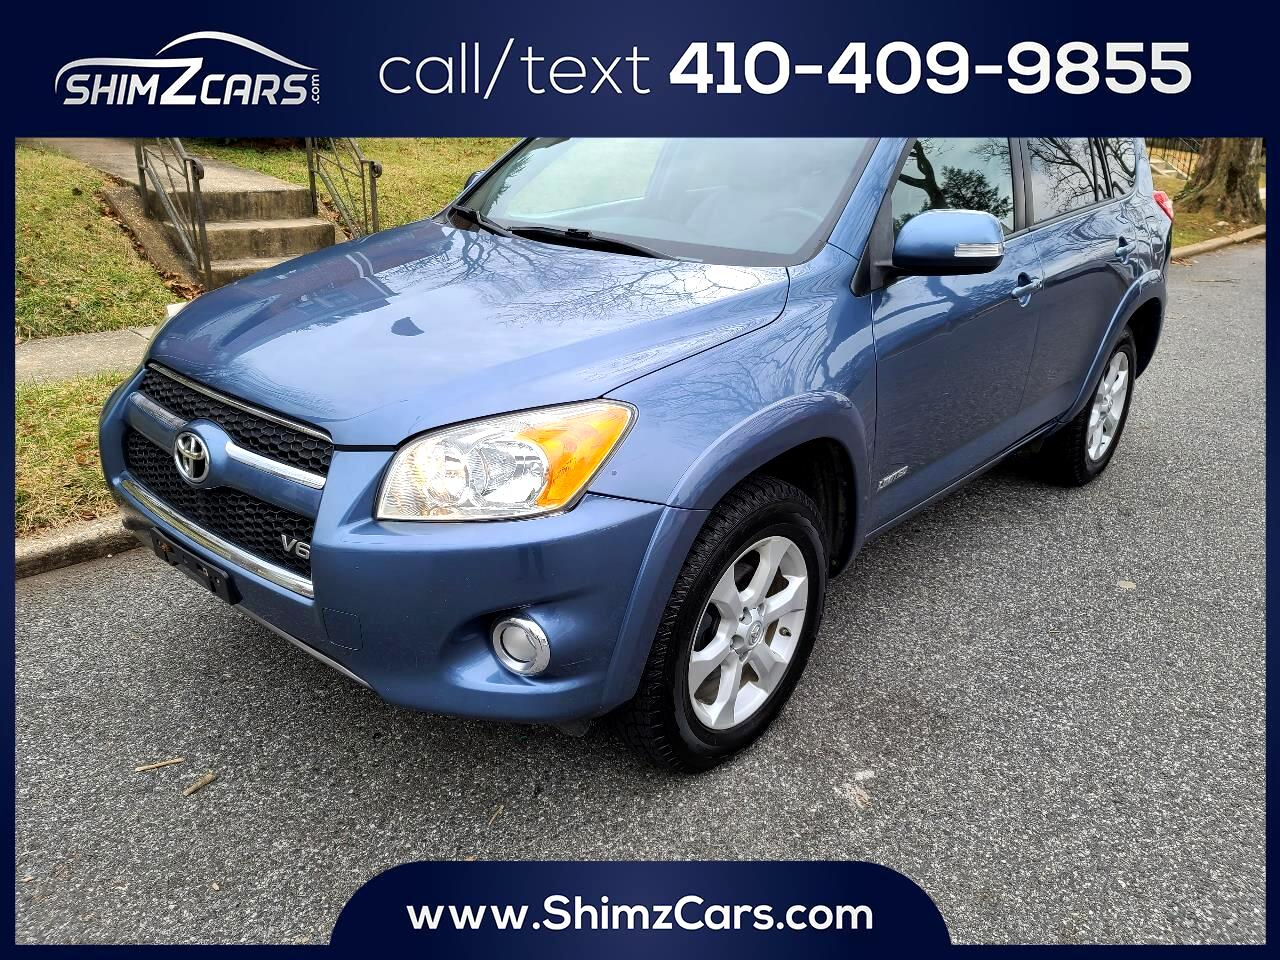 Toyota RAV4 4WD 4dr V6 5-Spd AT Ltd (Natl) 2009